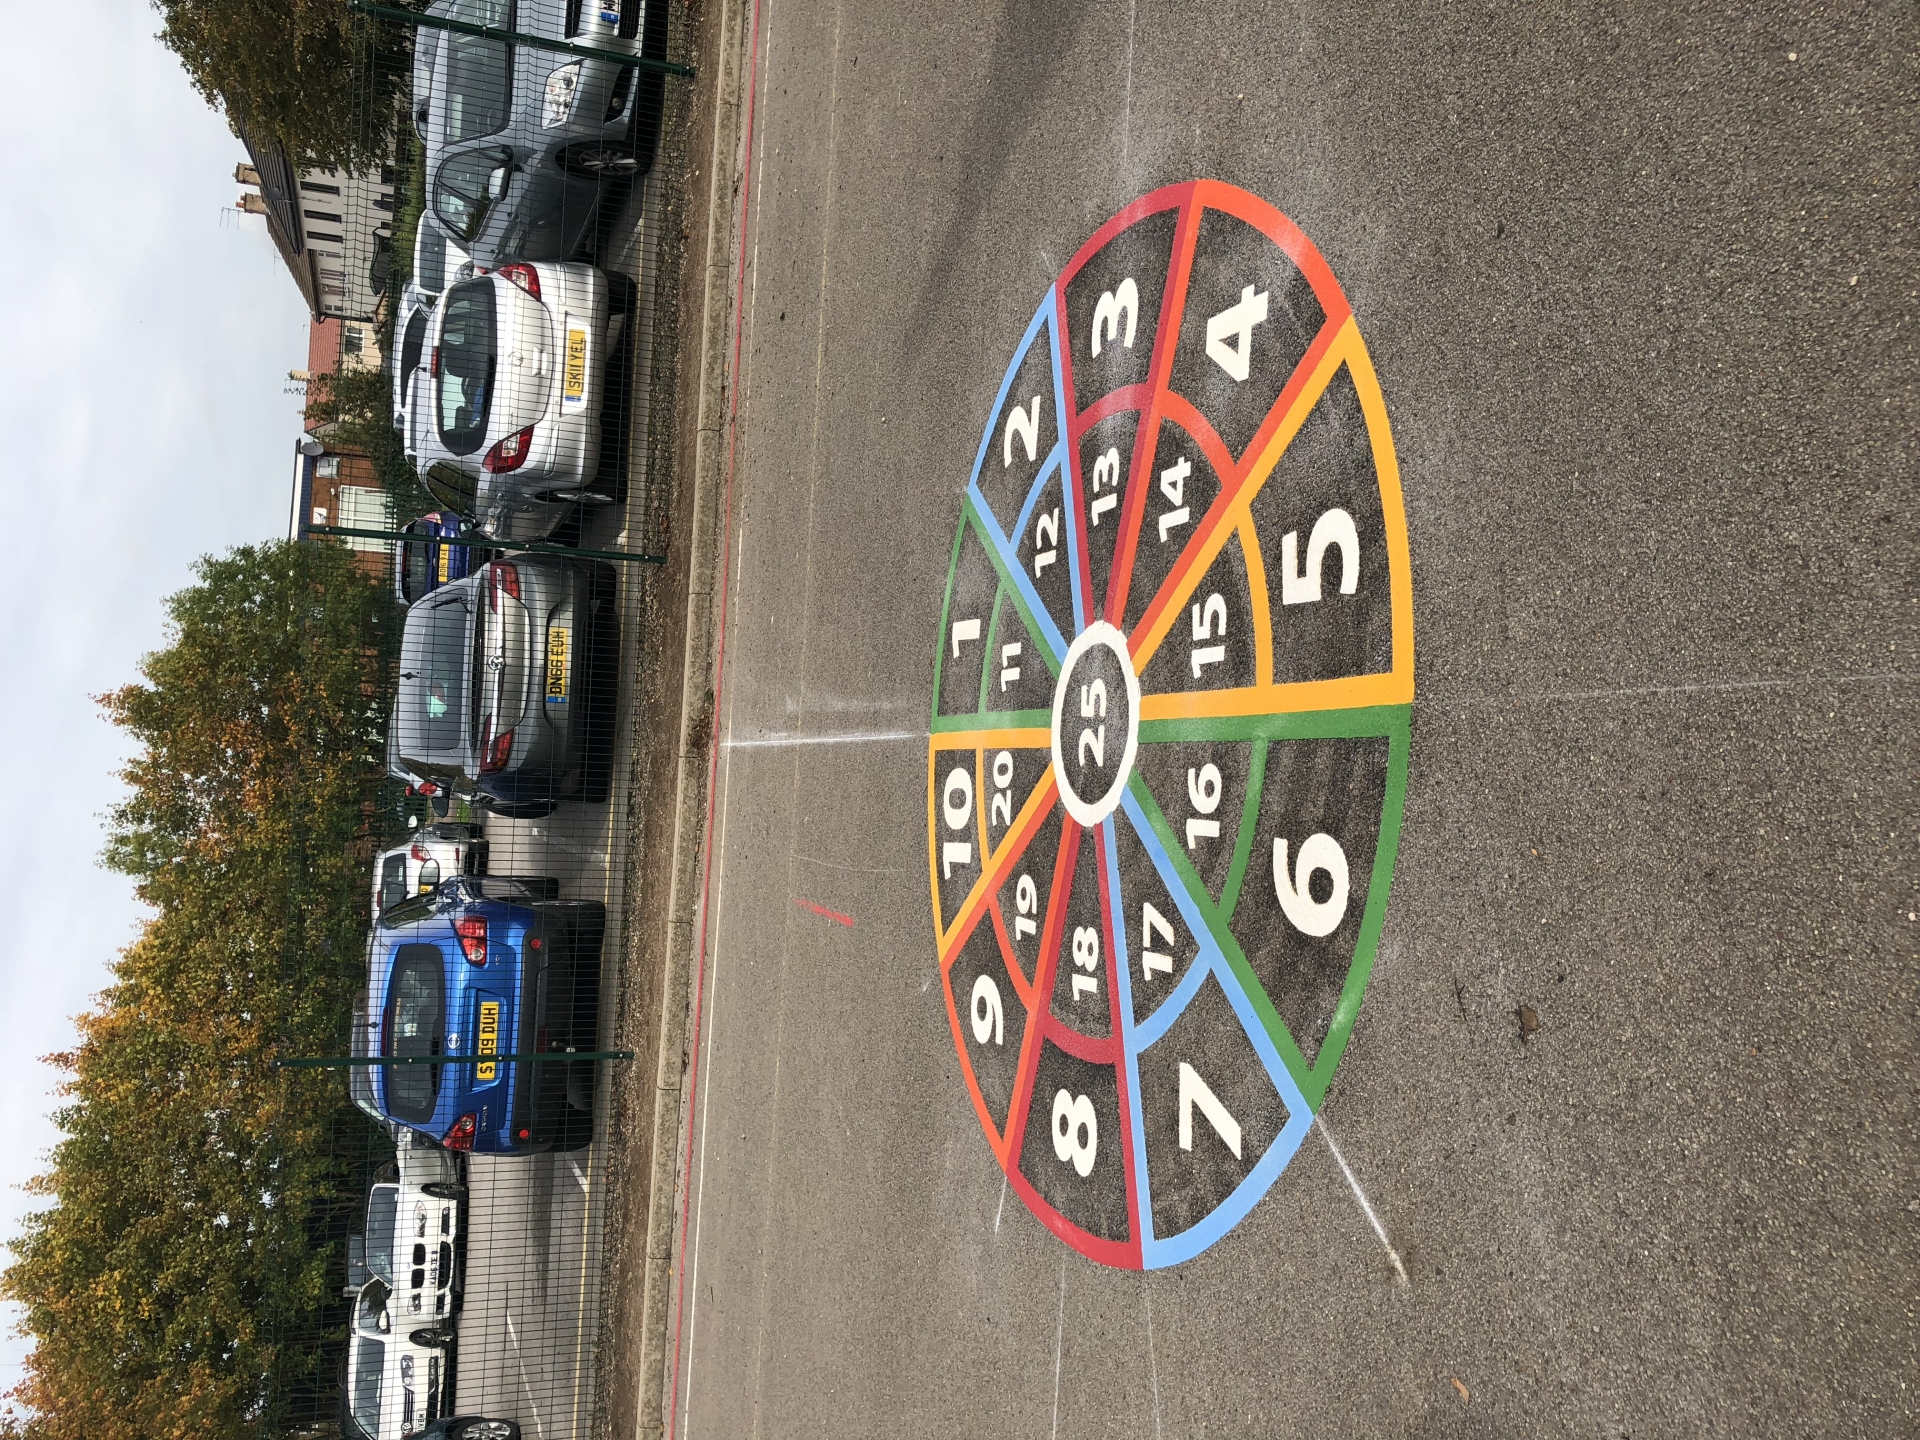 PLAYGROUND MARKINGS TARGETS